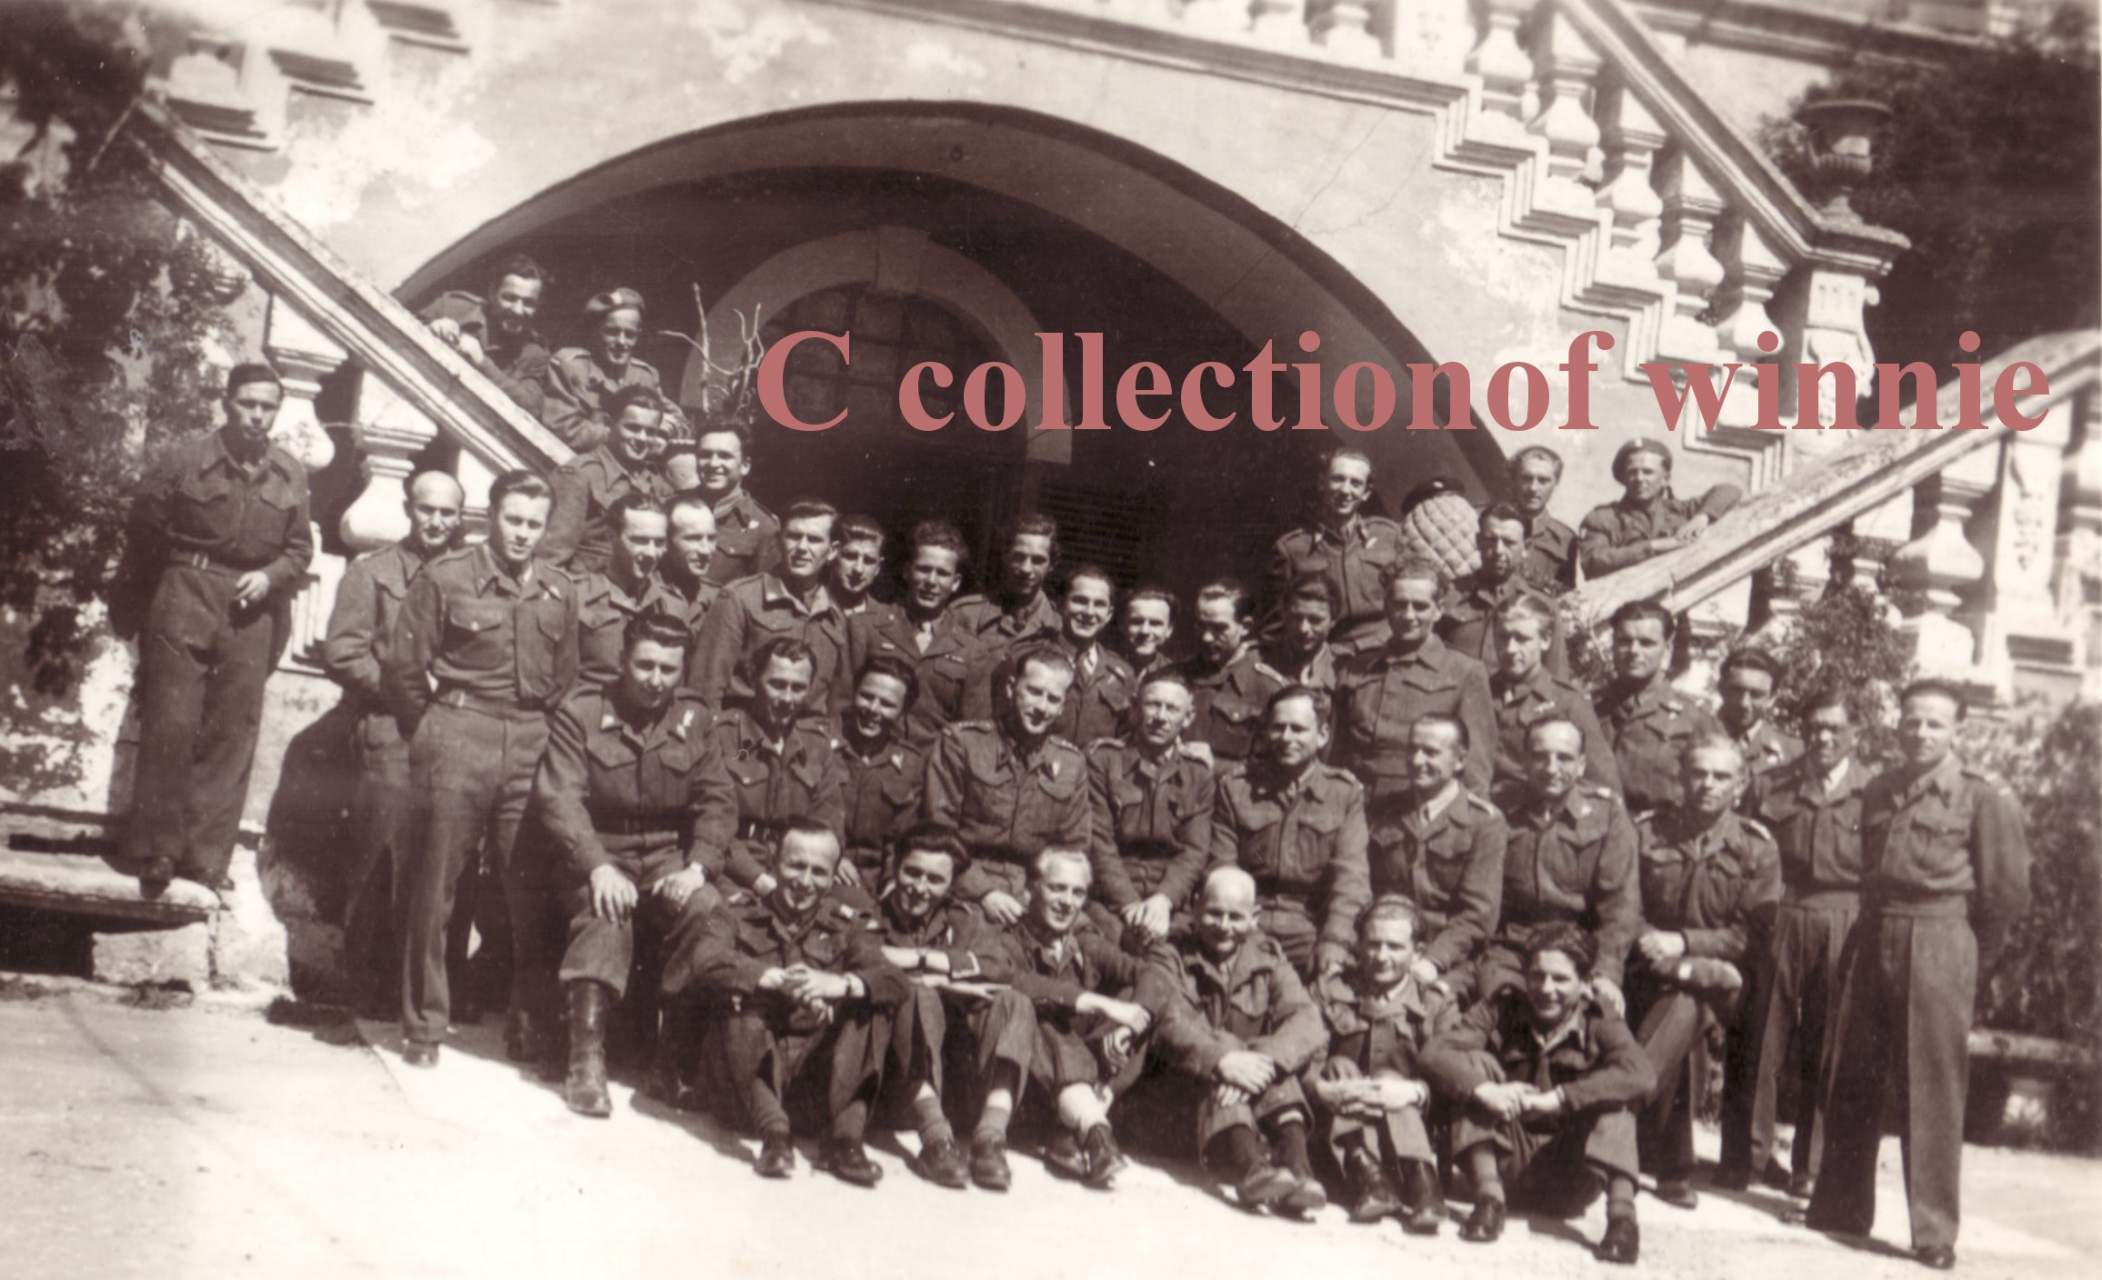 Recognise anyone? Naples 25 April 1945